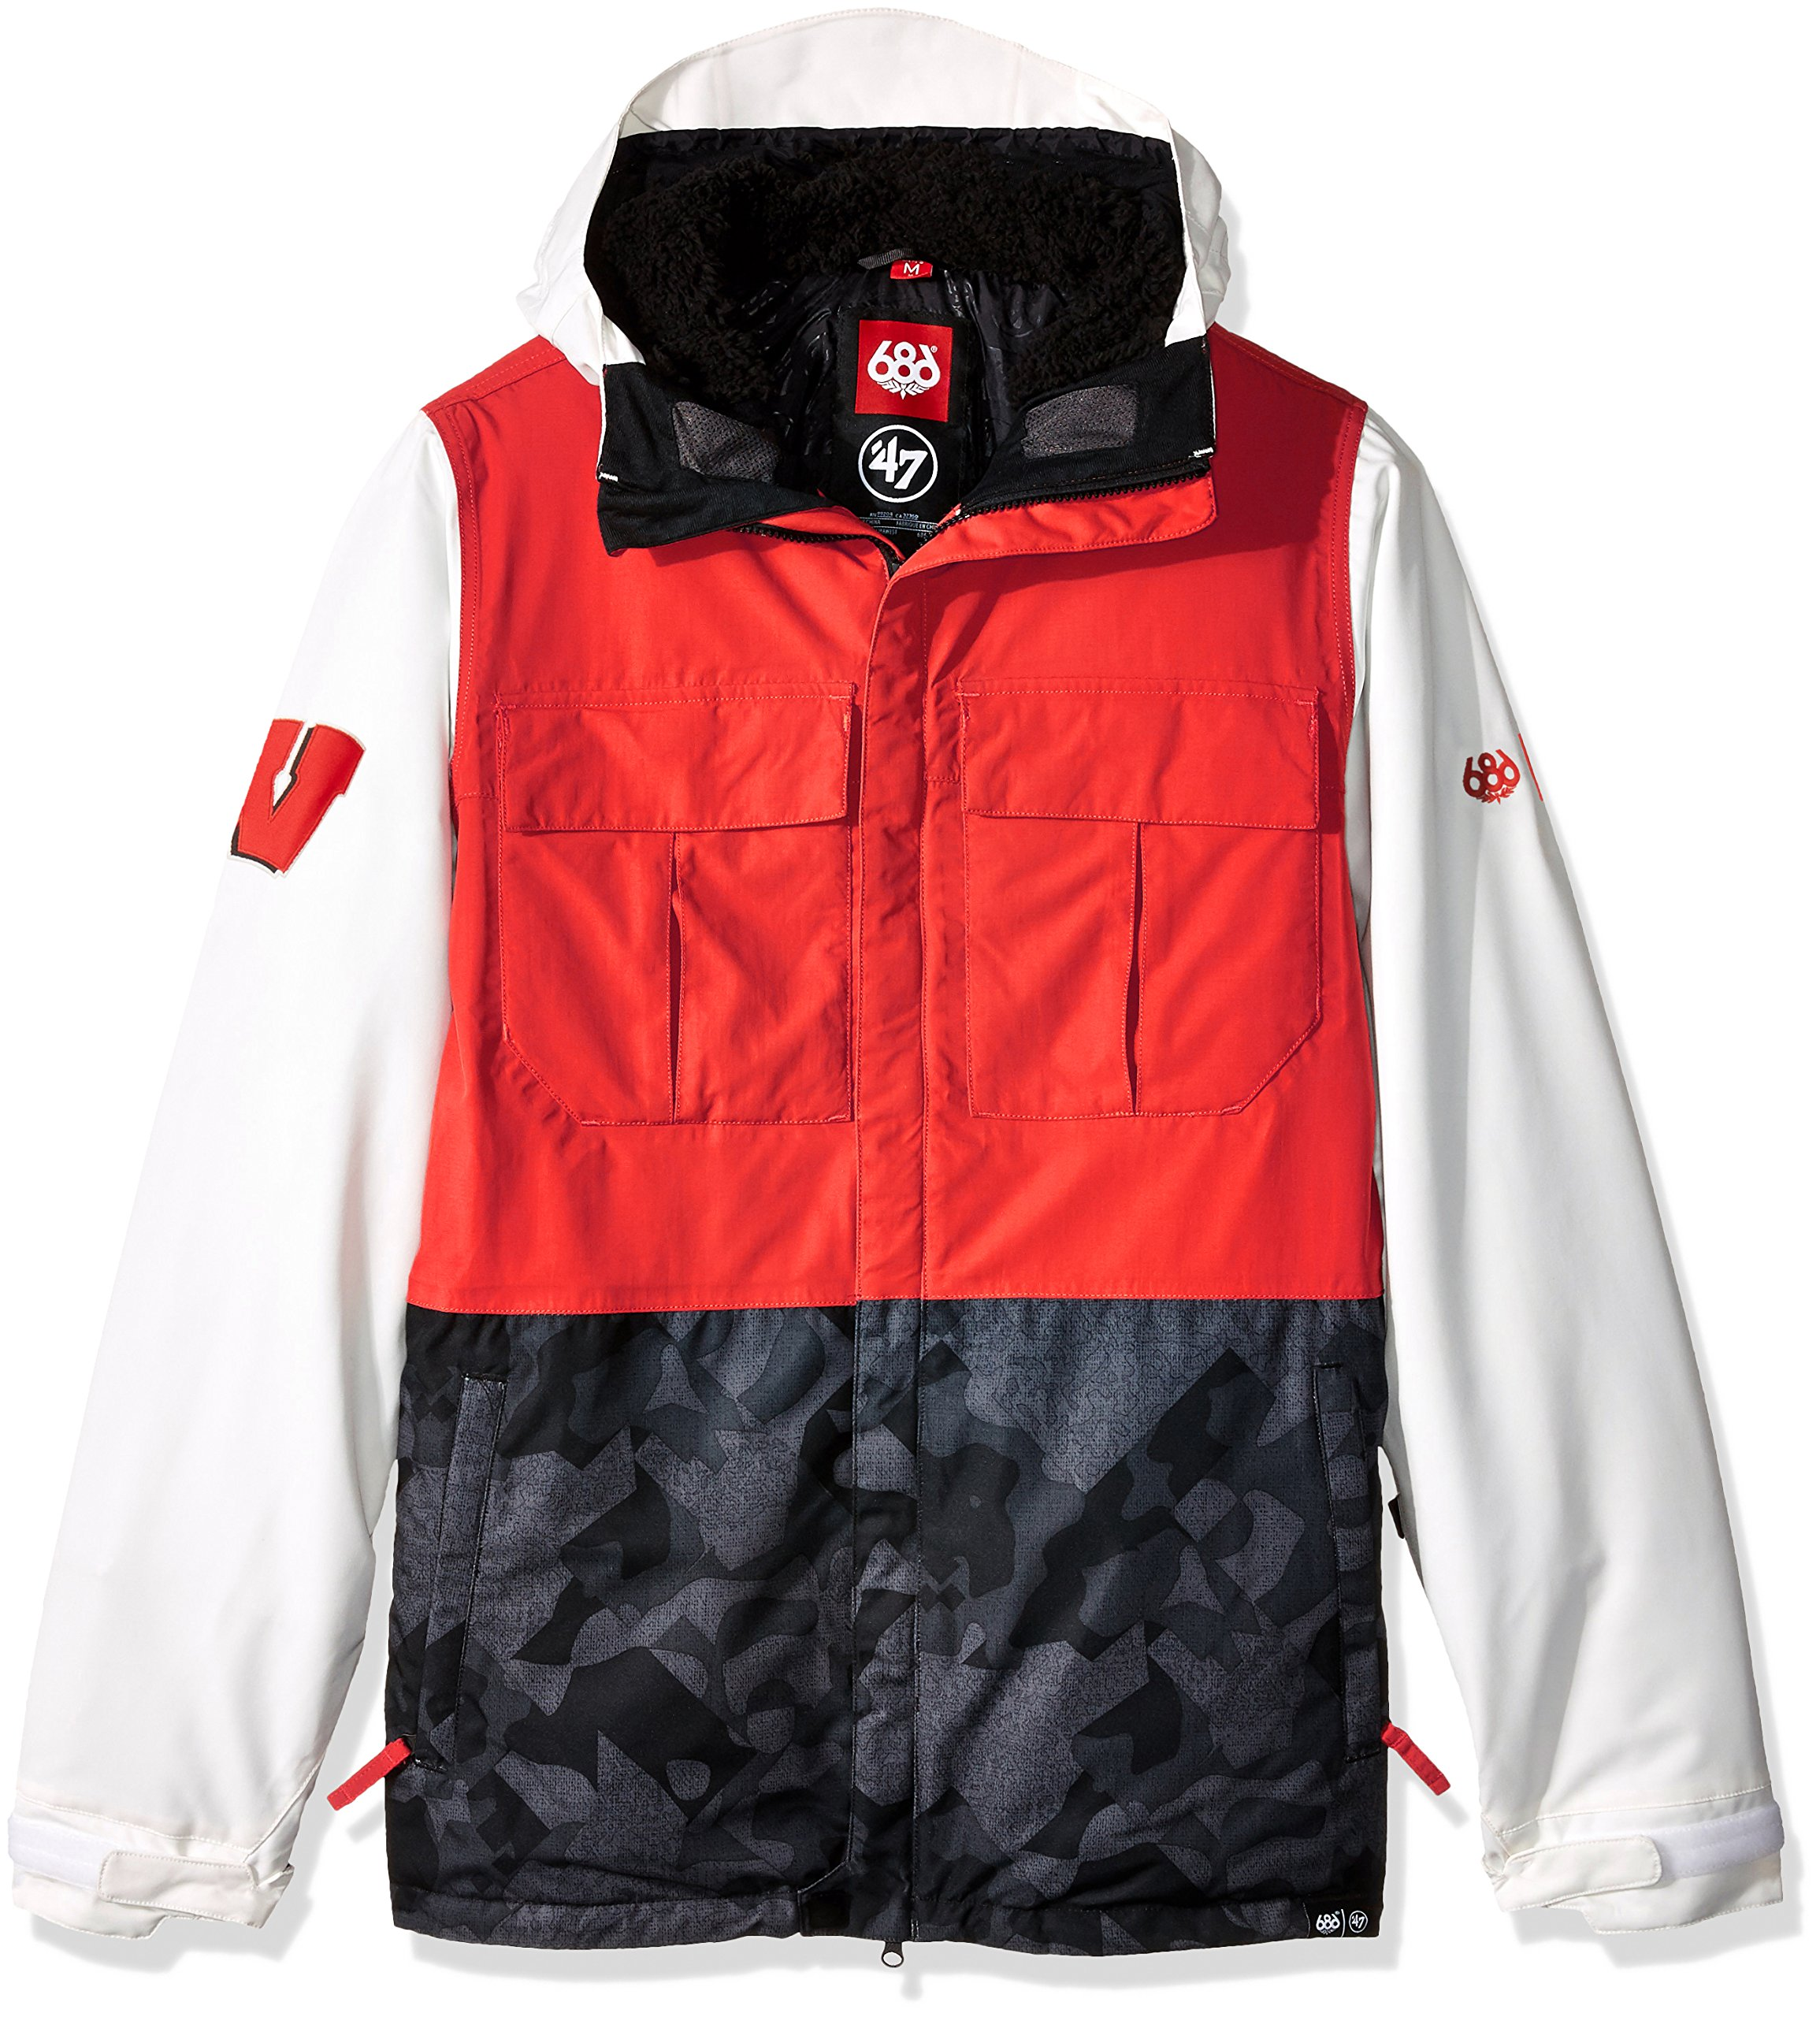 686x47 NCAA Wisconsin Badgers Men's Victory Insulated Jacket, Small, Wisconsin Red